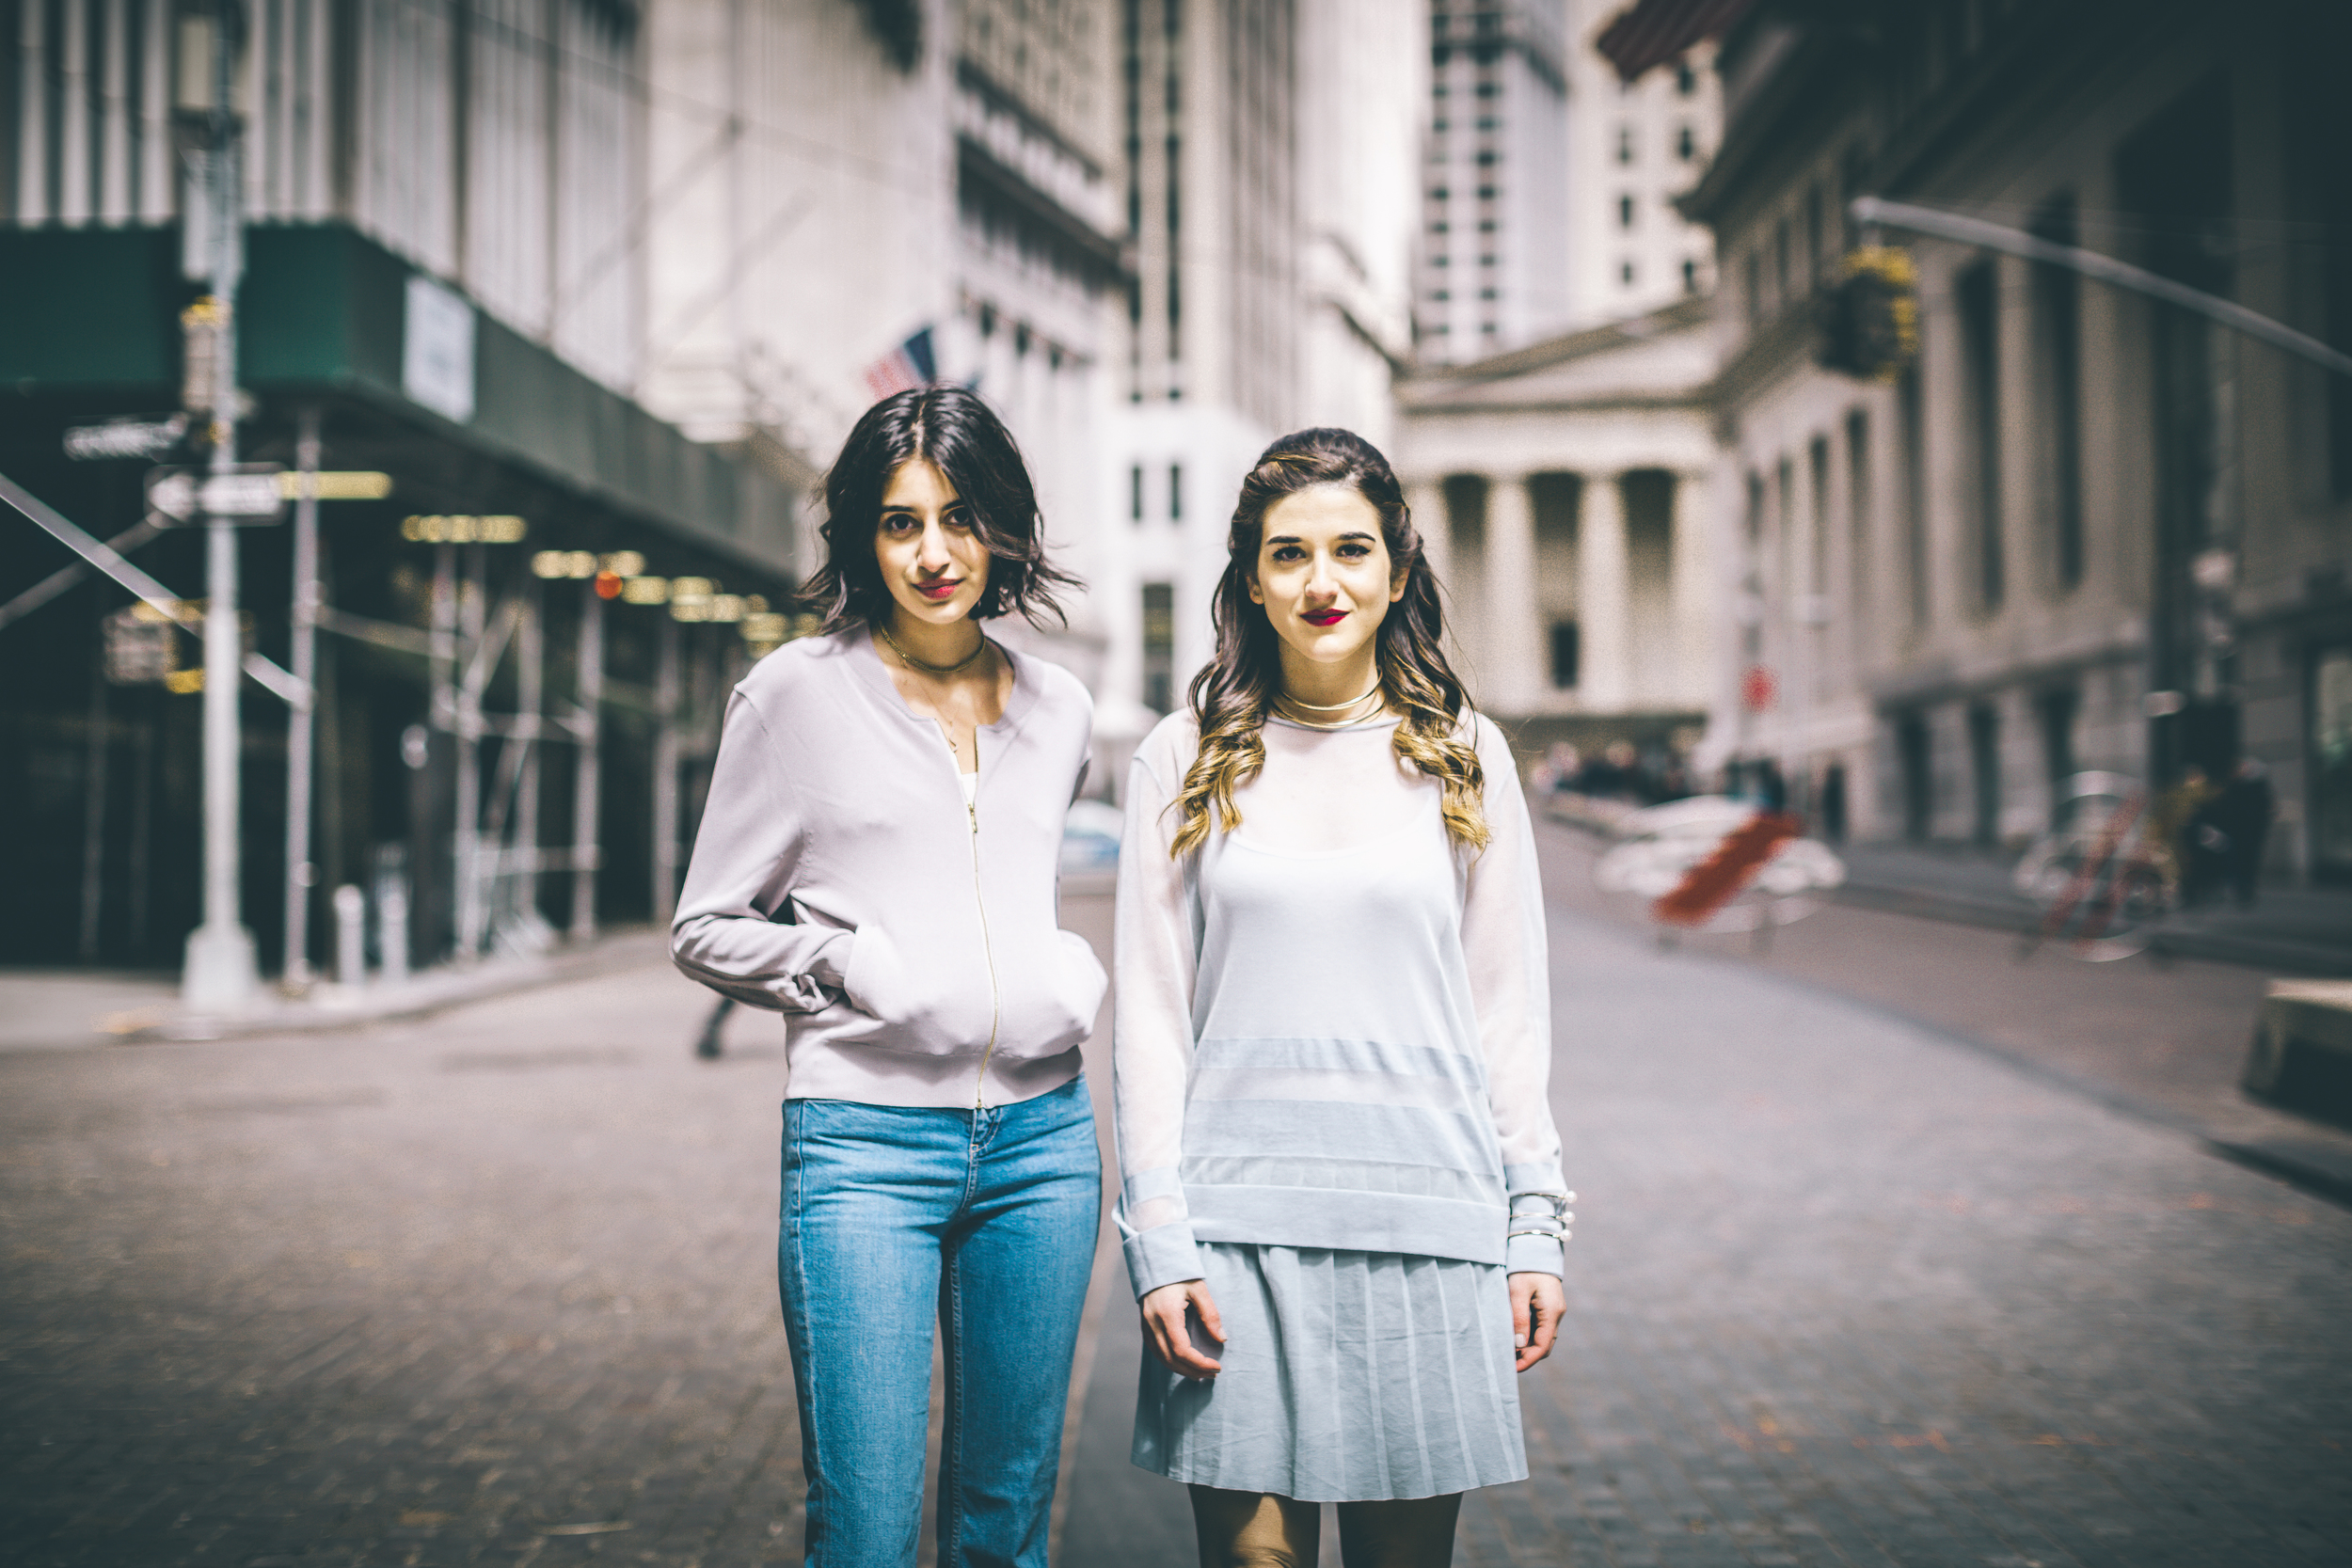 Louboutins & Love x Our Second Skin Photoshoot Collab Esther Santer NYC Street Style Fashion Blogger Anaa Saber Girls Women Matthew Pastula Photography Gold Jewelry Models Collar Necklace Monochrome Blue Skirt Sheer Top Shoes Outfit Look Lace-Up Heels.jpg